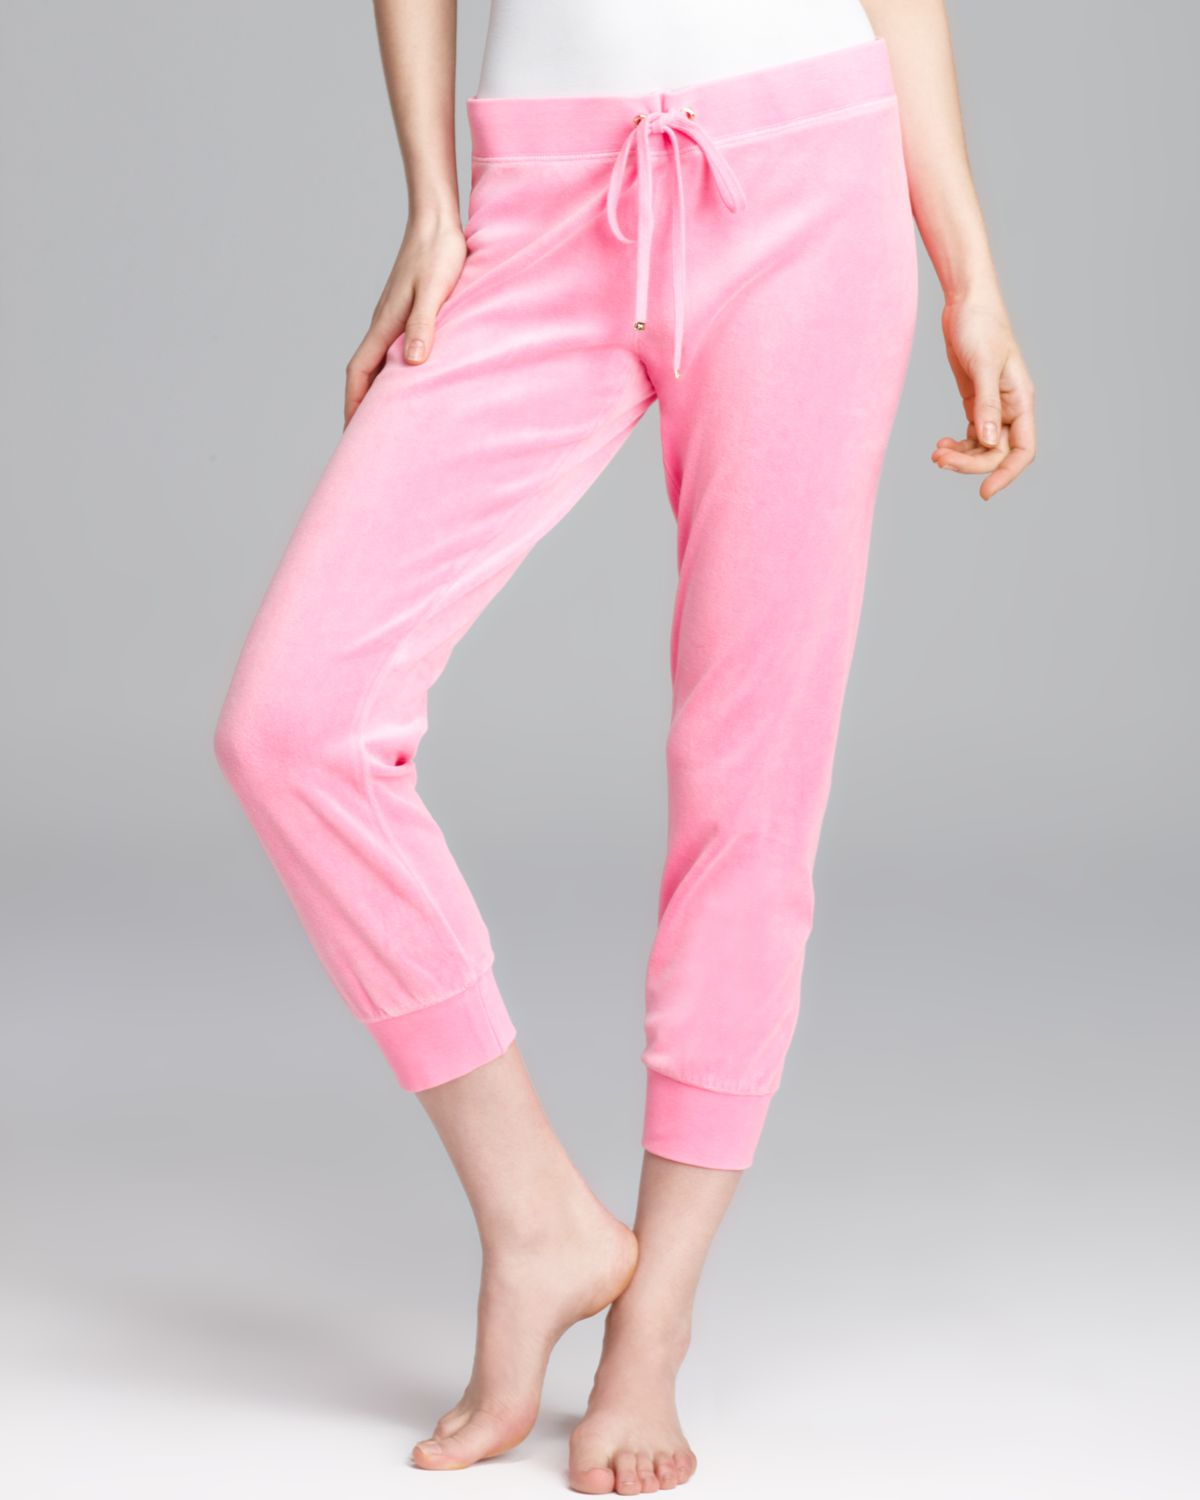 Juicy couture Capri Pants Back Pockets in Pink | Lyst